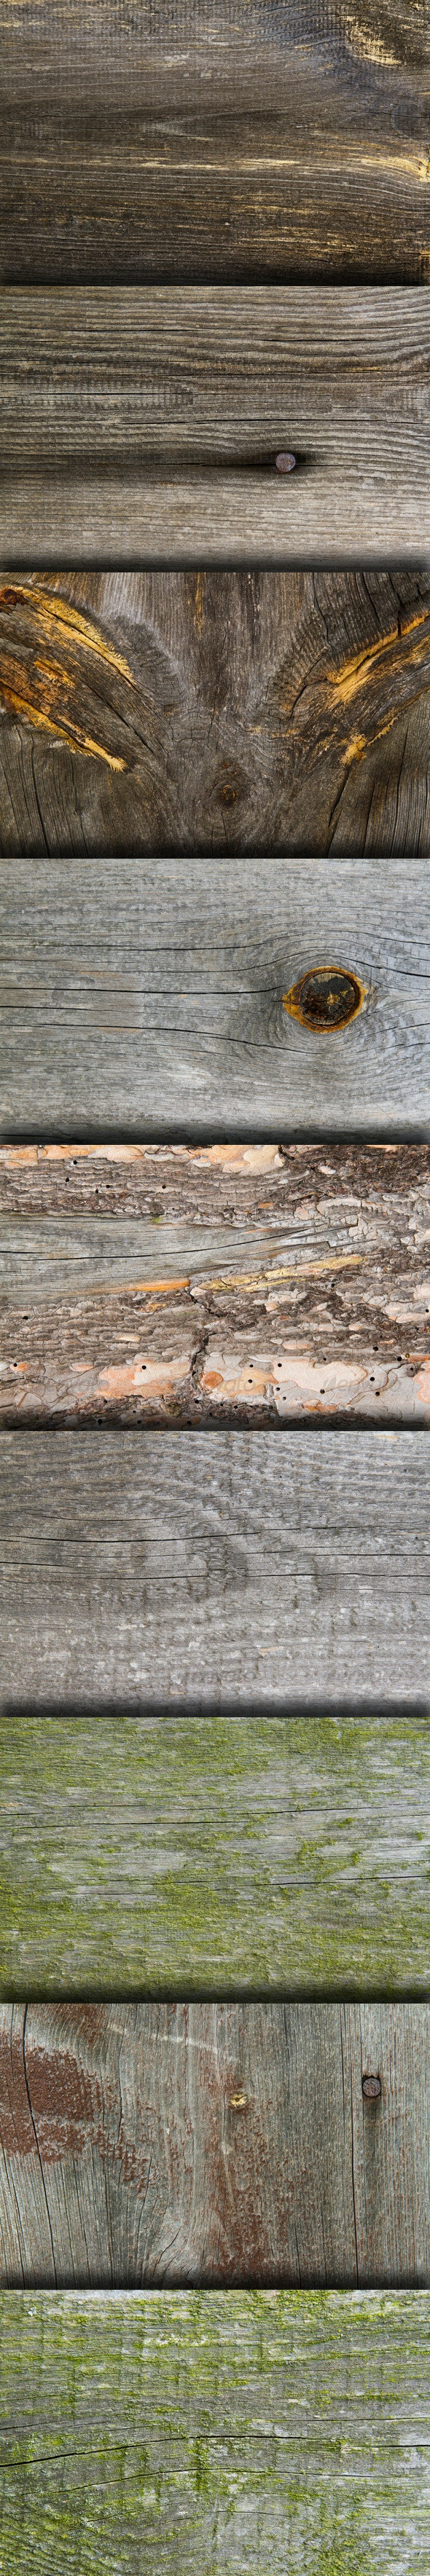 Grunge Old Wood Board Texture - Pack - Wood Textures